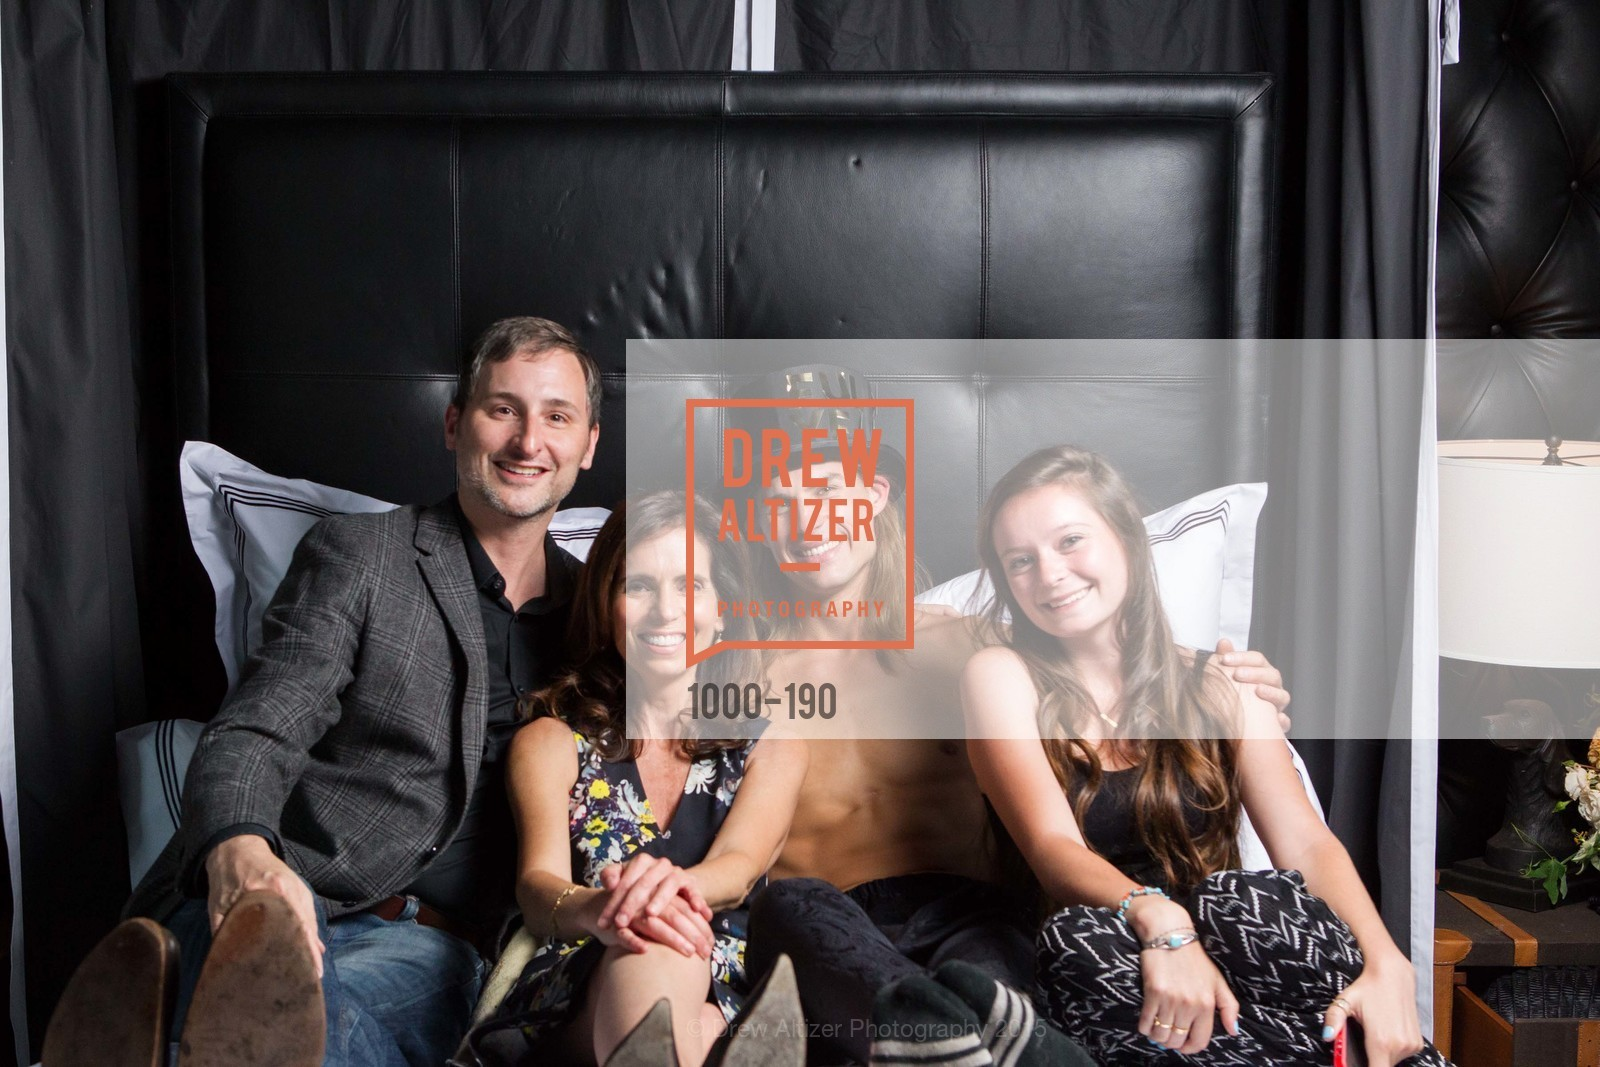 David Grabstald, Belinda Getler, Winston Black, Amanda Levensohn, KEN FULK'S New Furniture Line Unveiling at THE MAGIC FACTORY, The Magic Factory. 310 7th St, June 25th, 2015,Drew Altizer, Drew Altizer Photography, full-service agency, private events, San Francisco photographer, photographer california